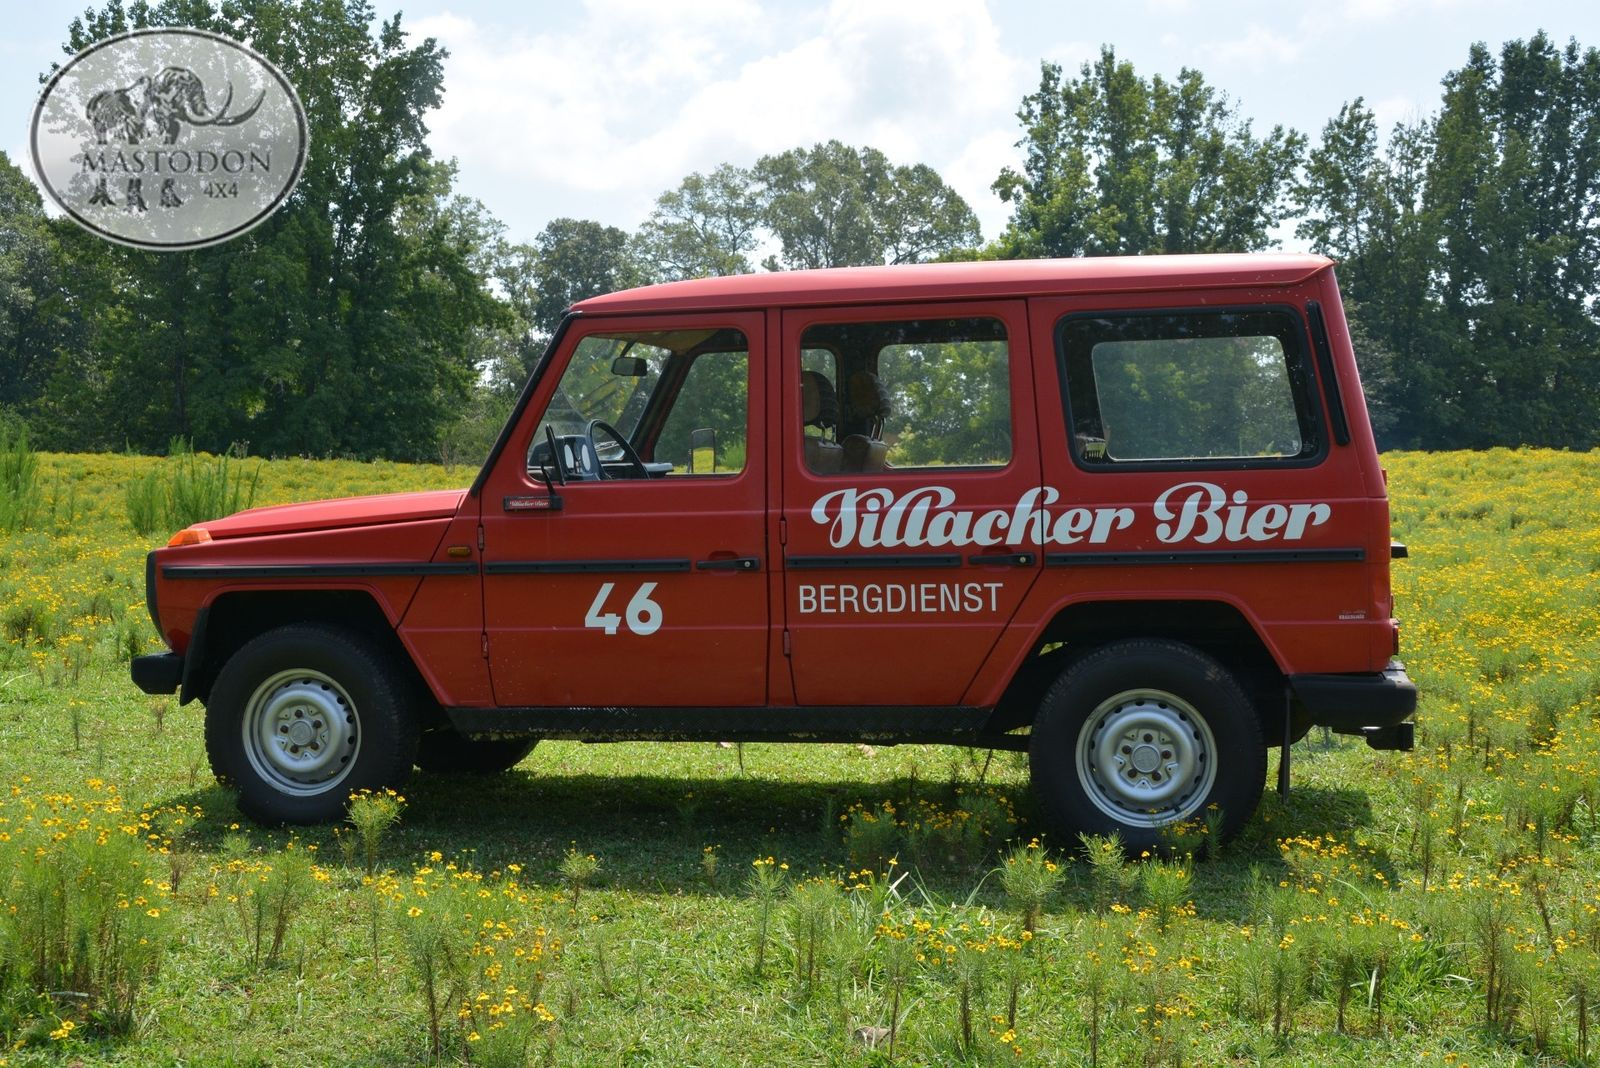 1980 Red BARN DOOR 230GE RED 4x4 HARDTOP G-class G-wagen ...